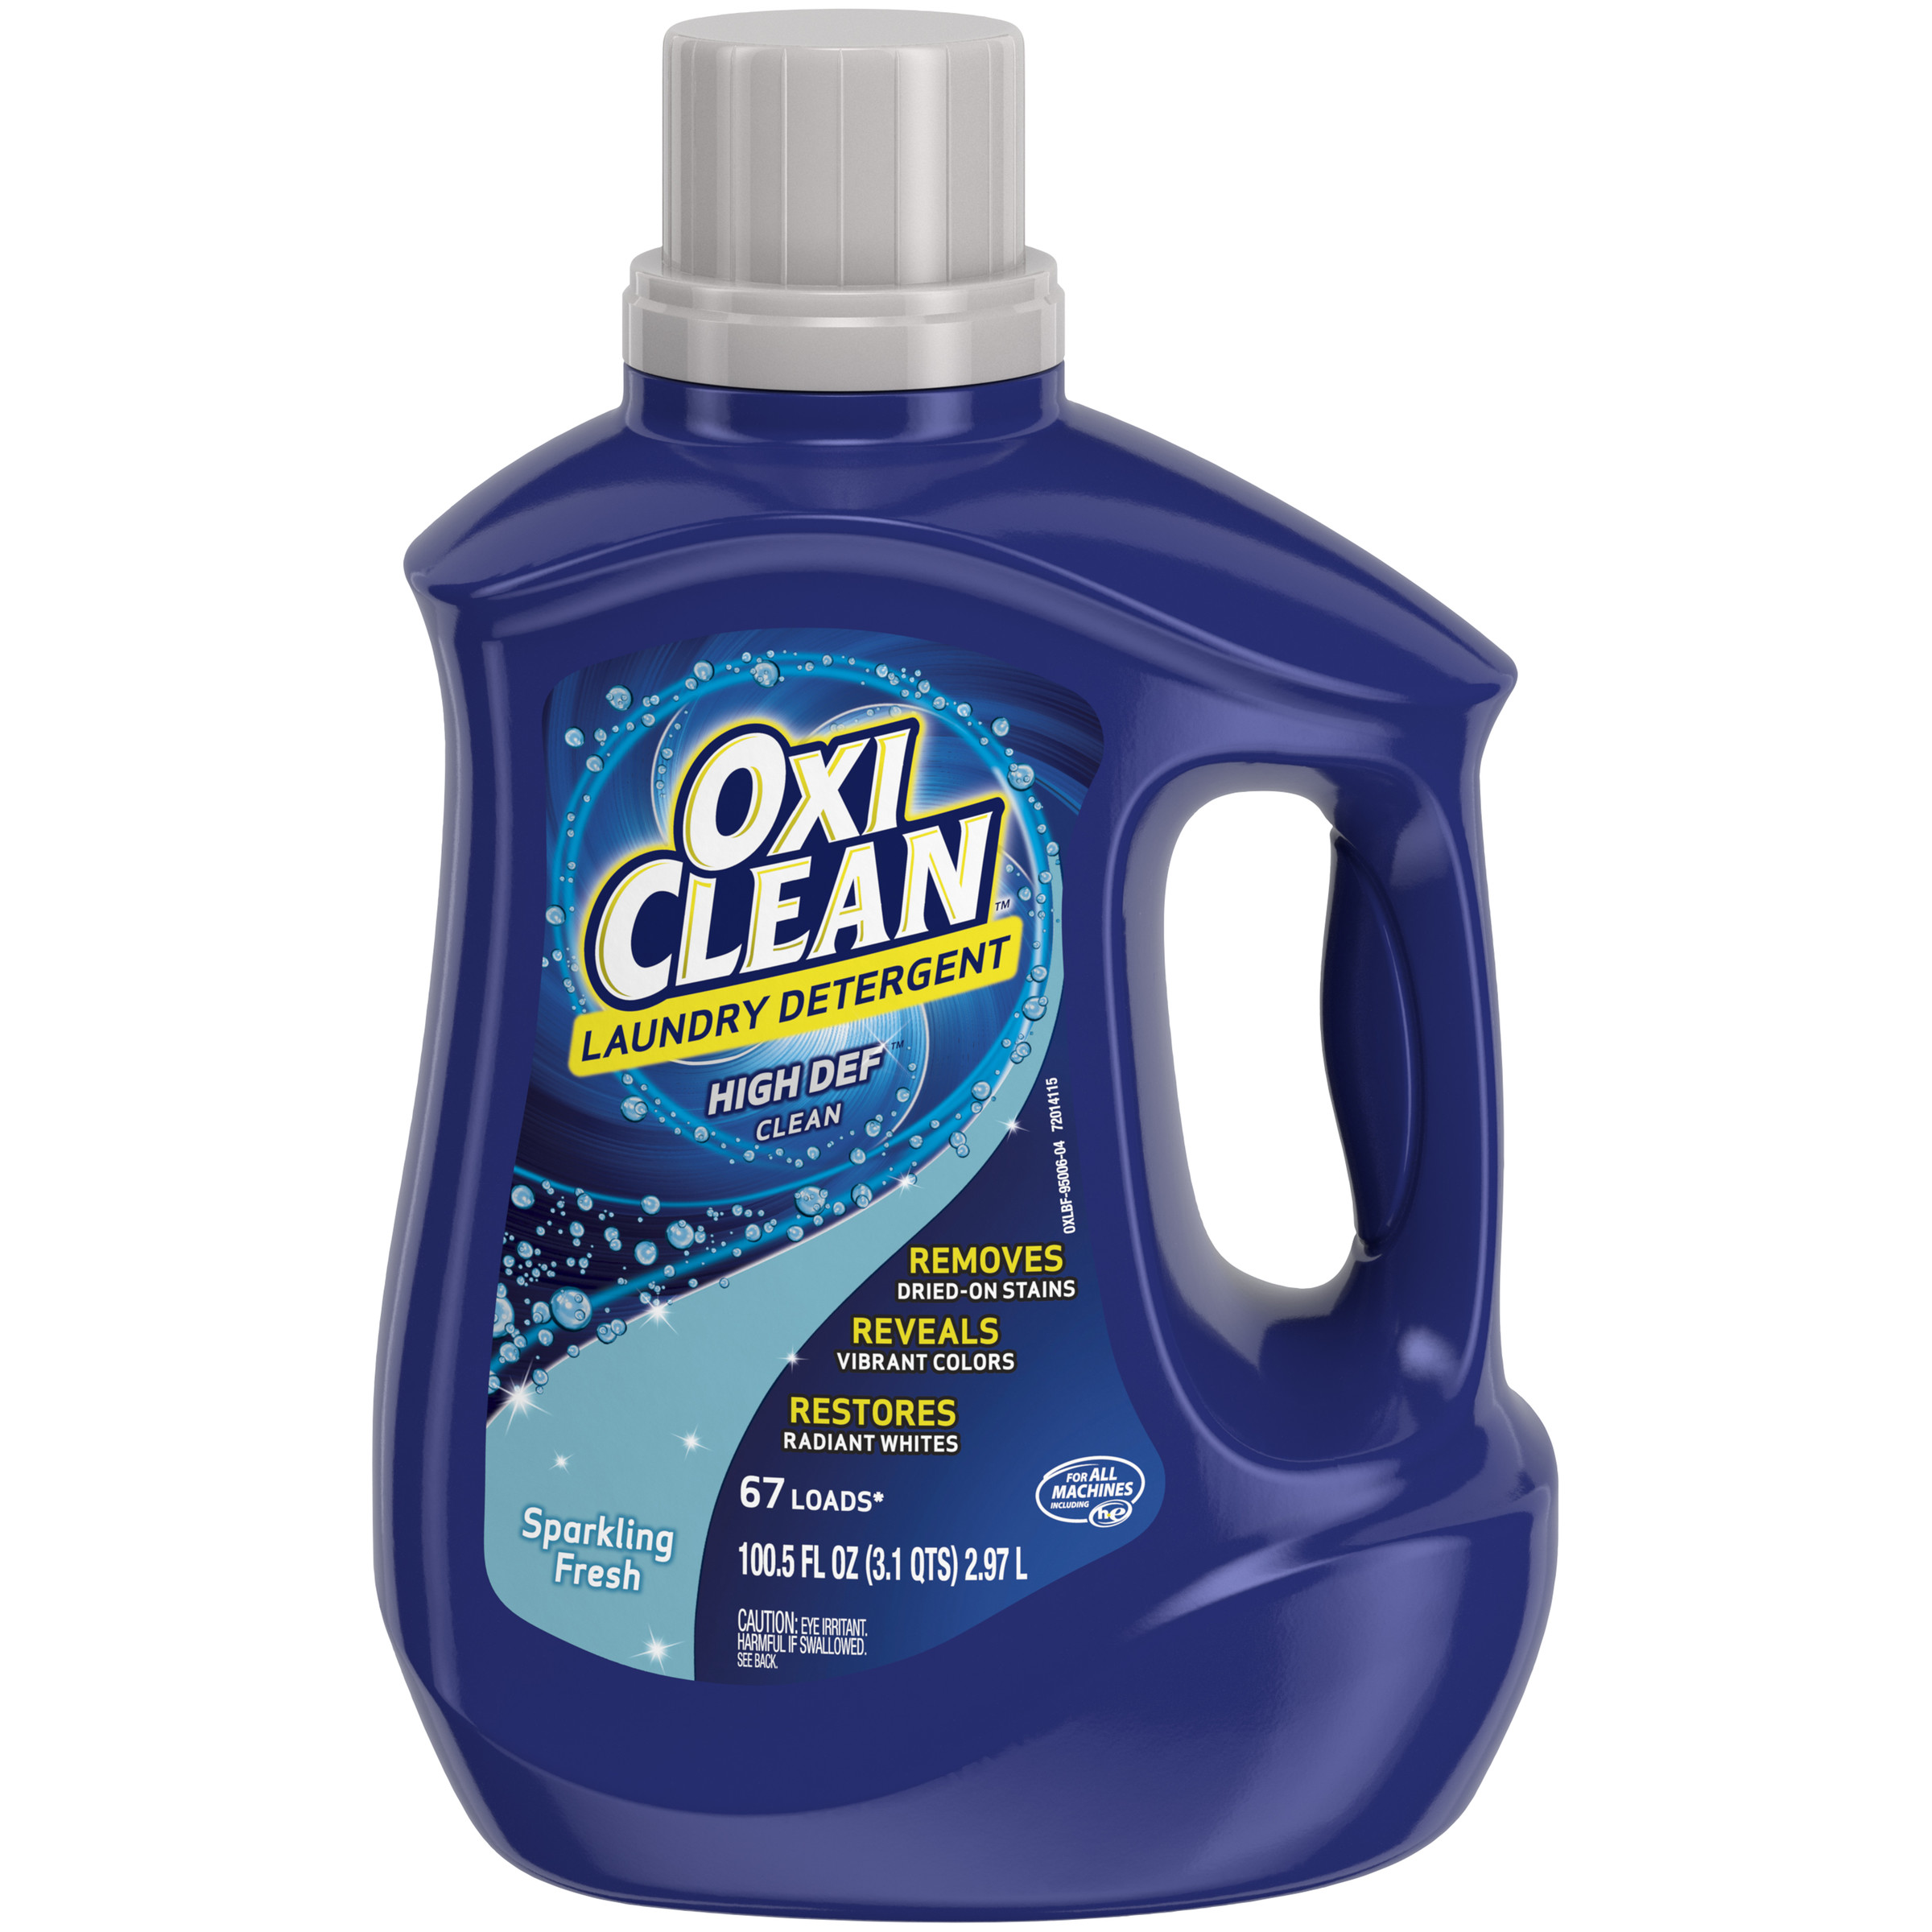 OxiClean Liquid Laundry Detergent, Sparkling Fresh Scent, 100.5 oz.